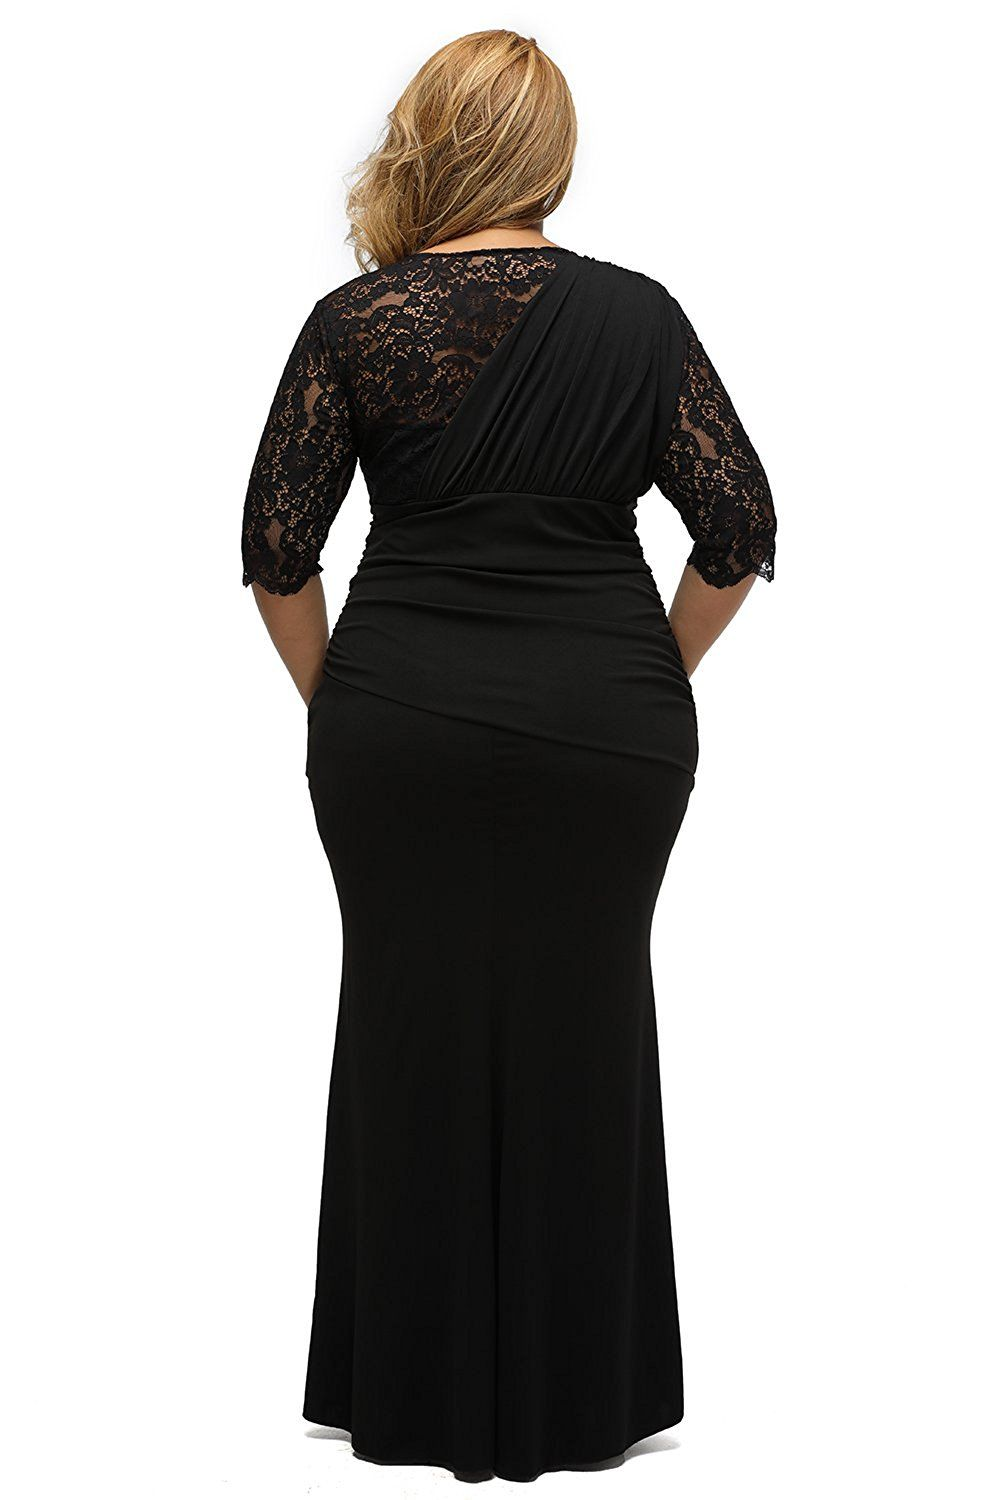 Lalagen womenus plus size lace half sleeve long wedding evening maxi